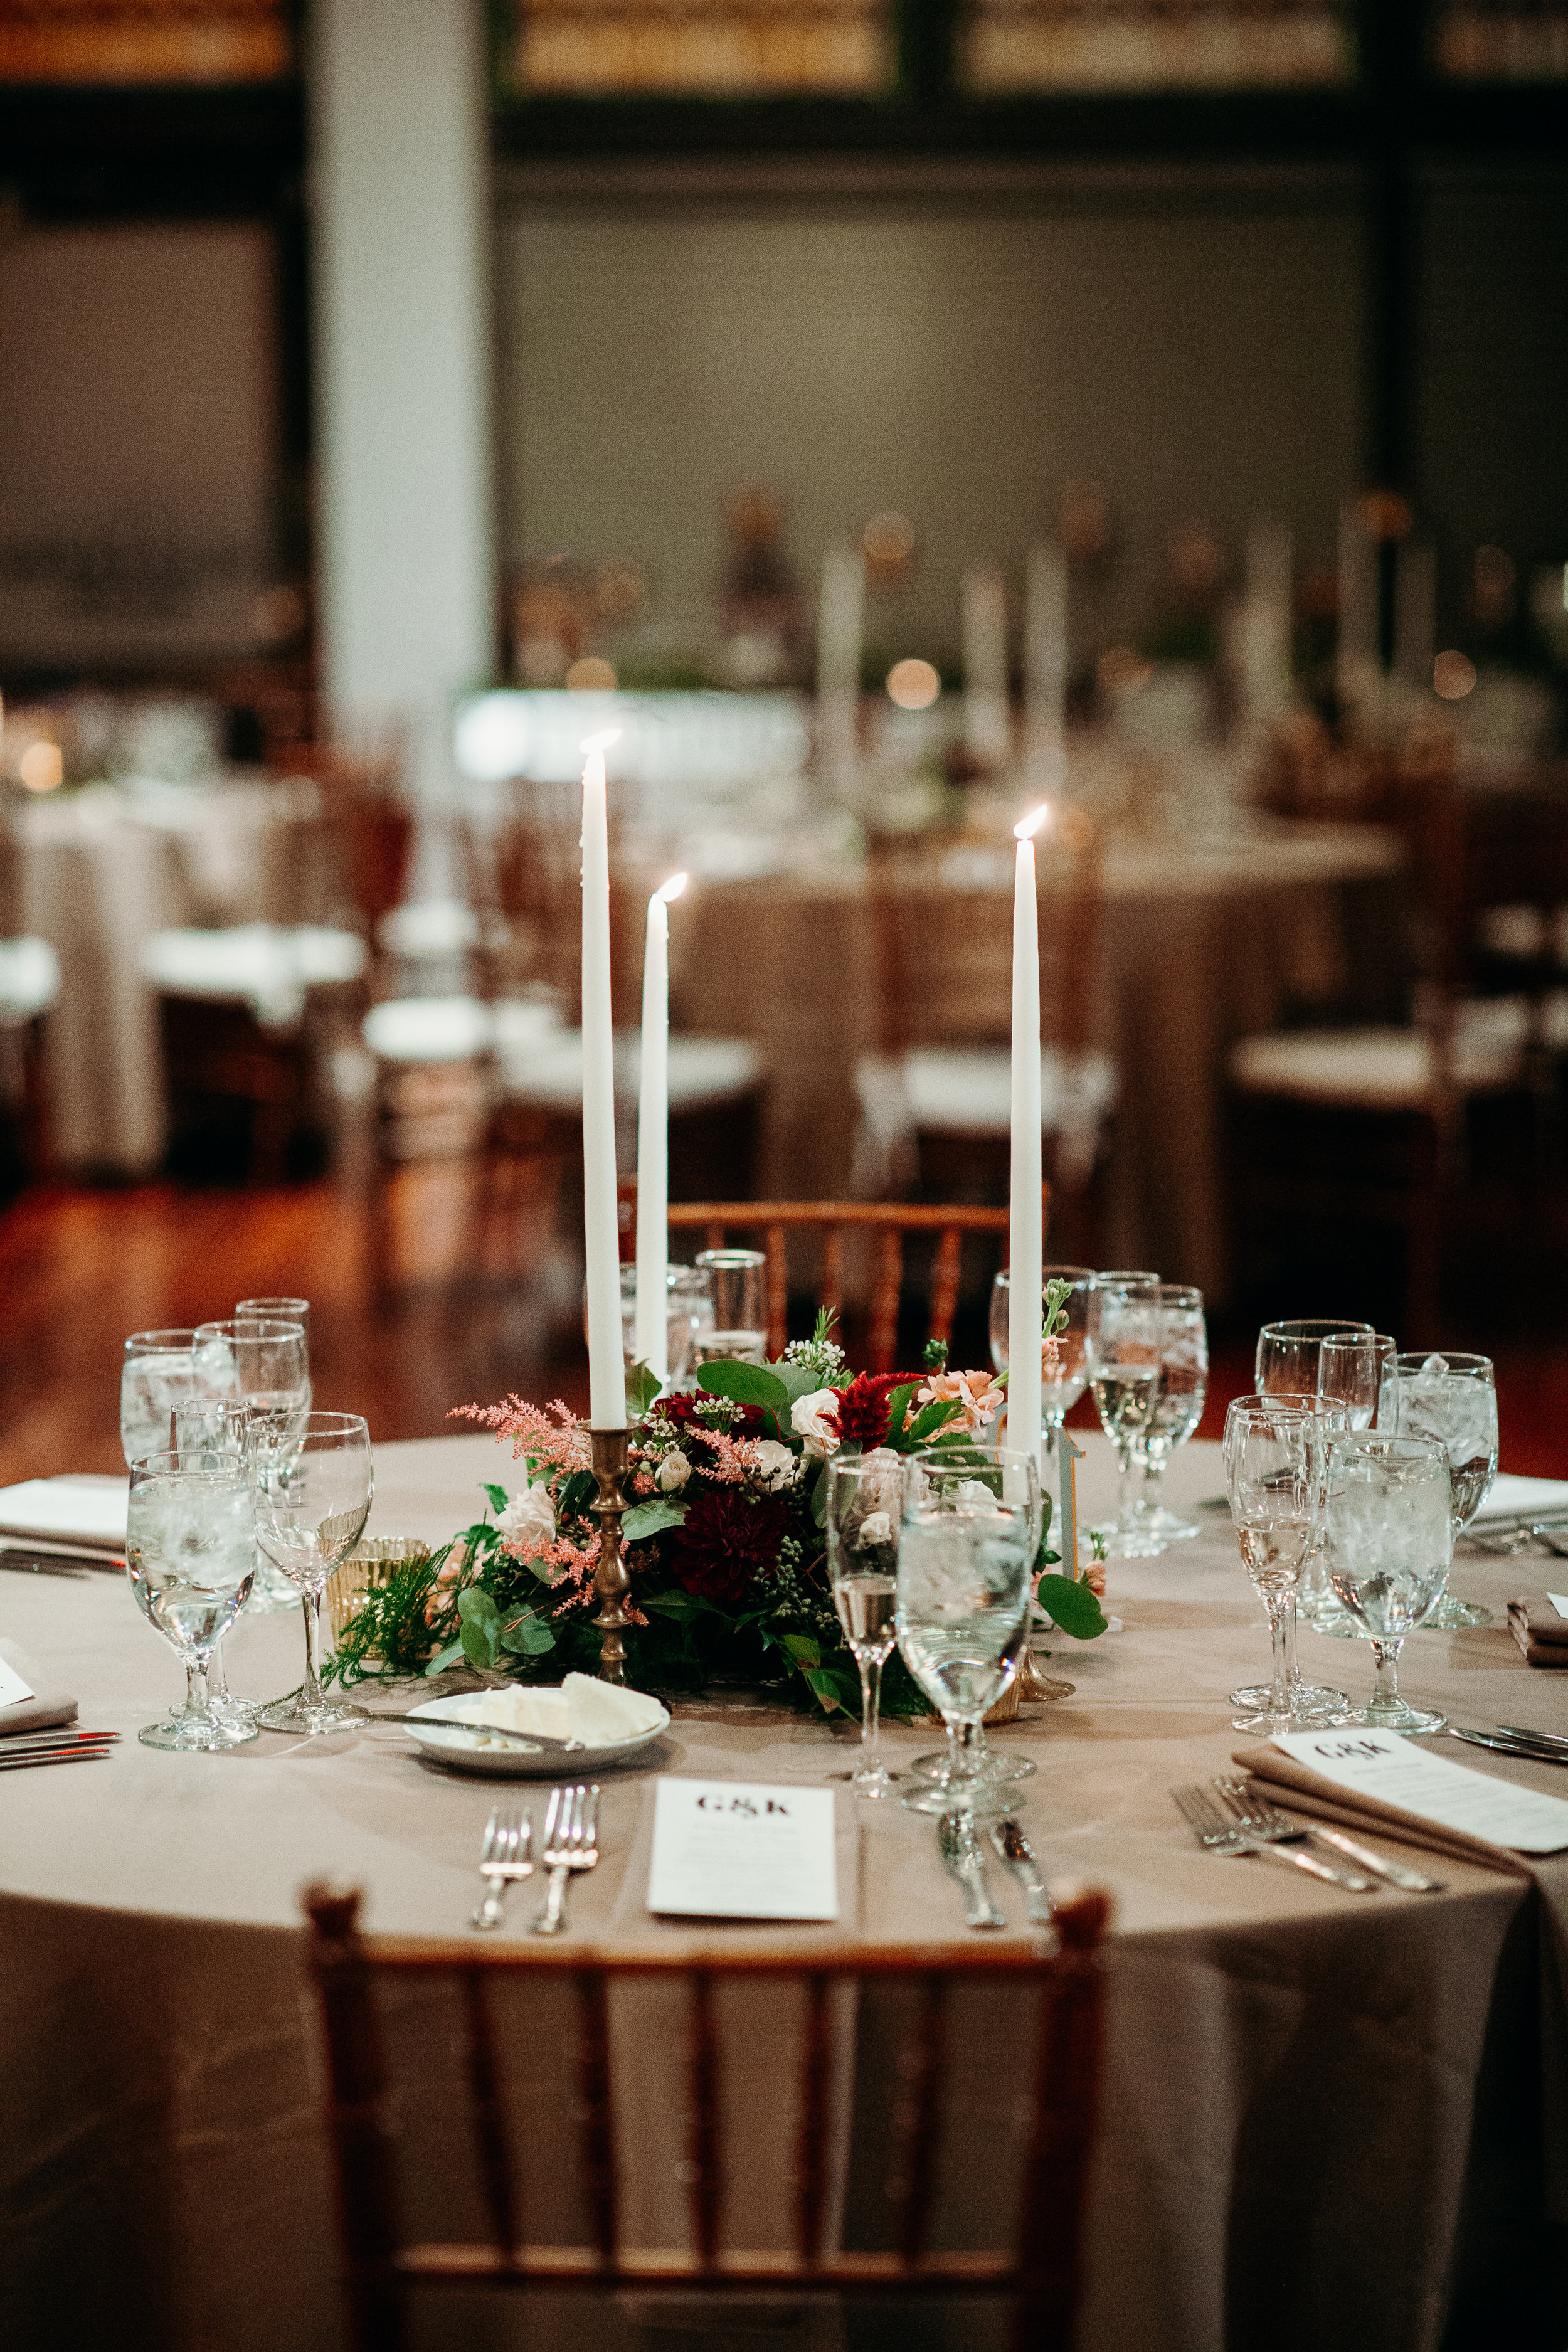 Philly Wedding, Centerpiece, Low Centerpiece, Greenery, Olde Bar Philly, Bookbinders, Philly Bride, A Garden Party, We Laugh We Love Photography